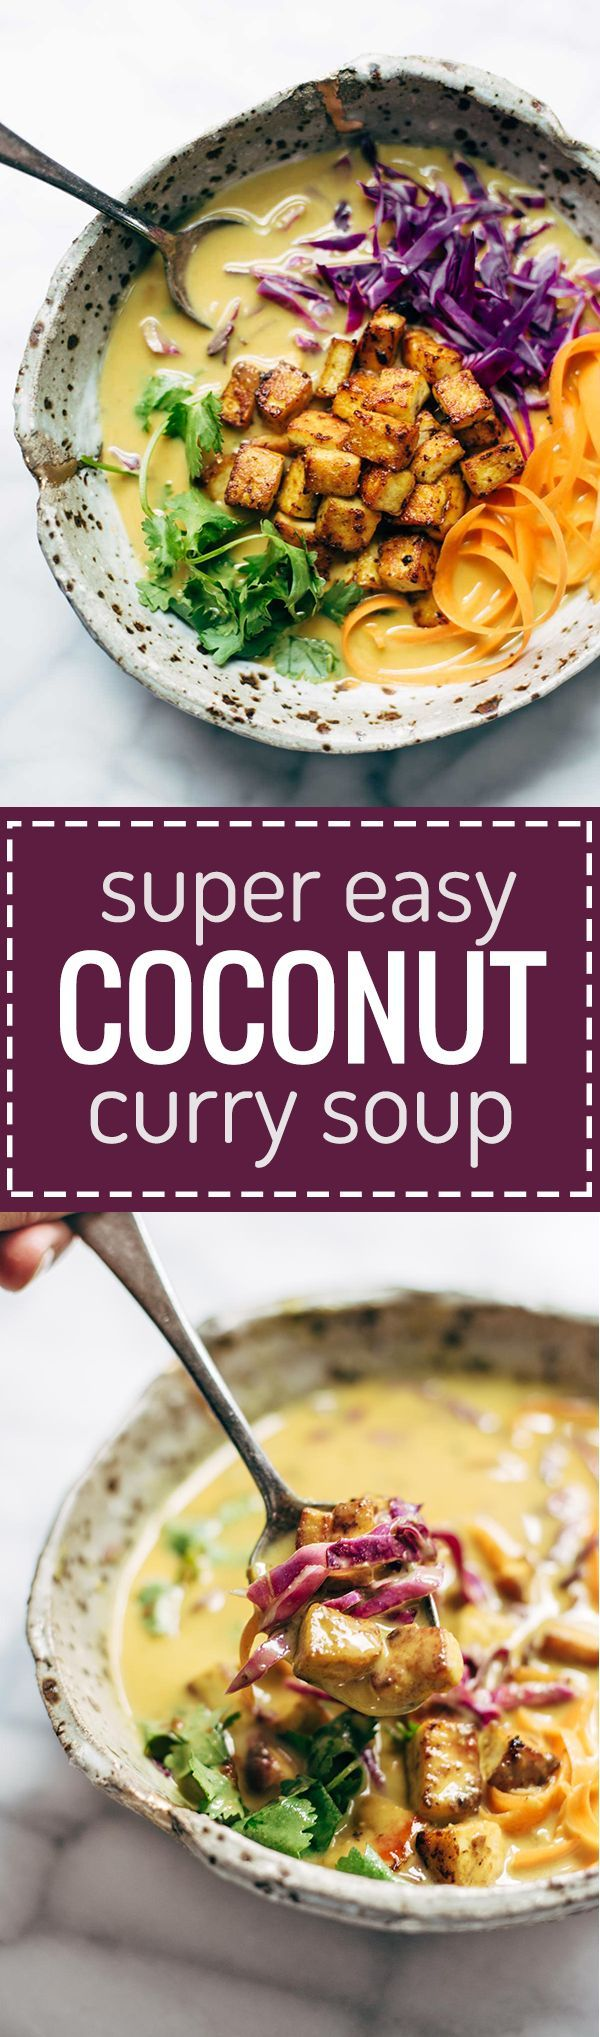 Anything-You-Have Coconut Curry Soup